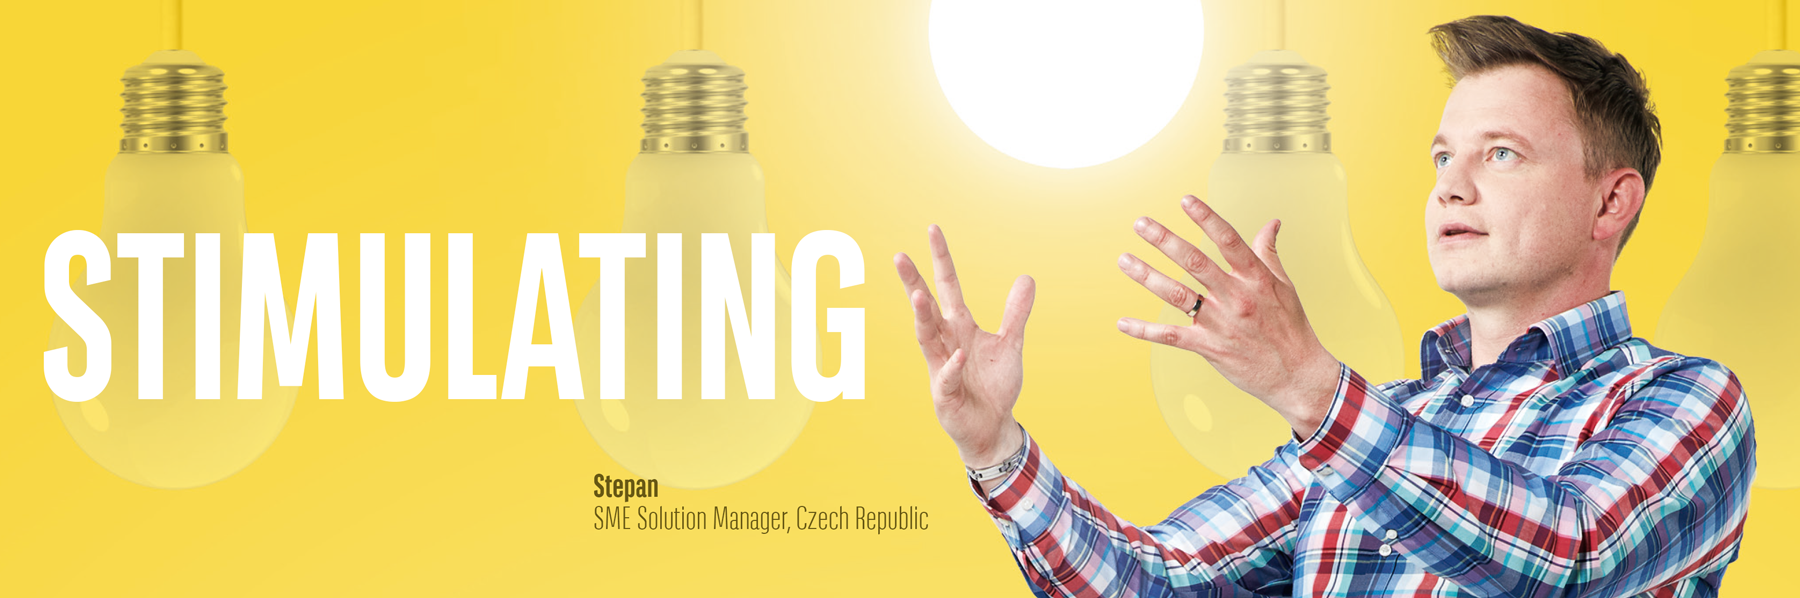 Stepan, SME Solution Manager, Czech Republic